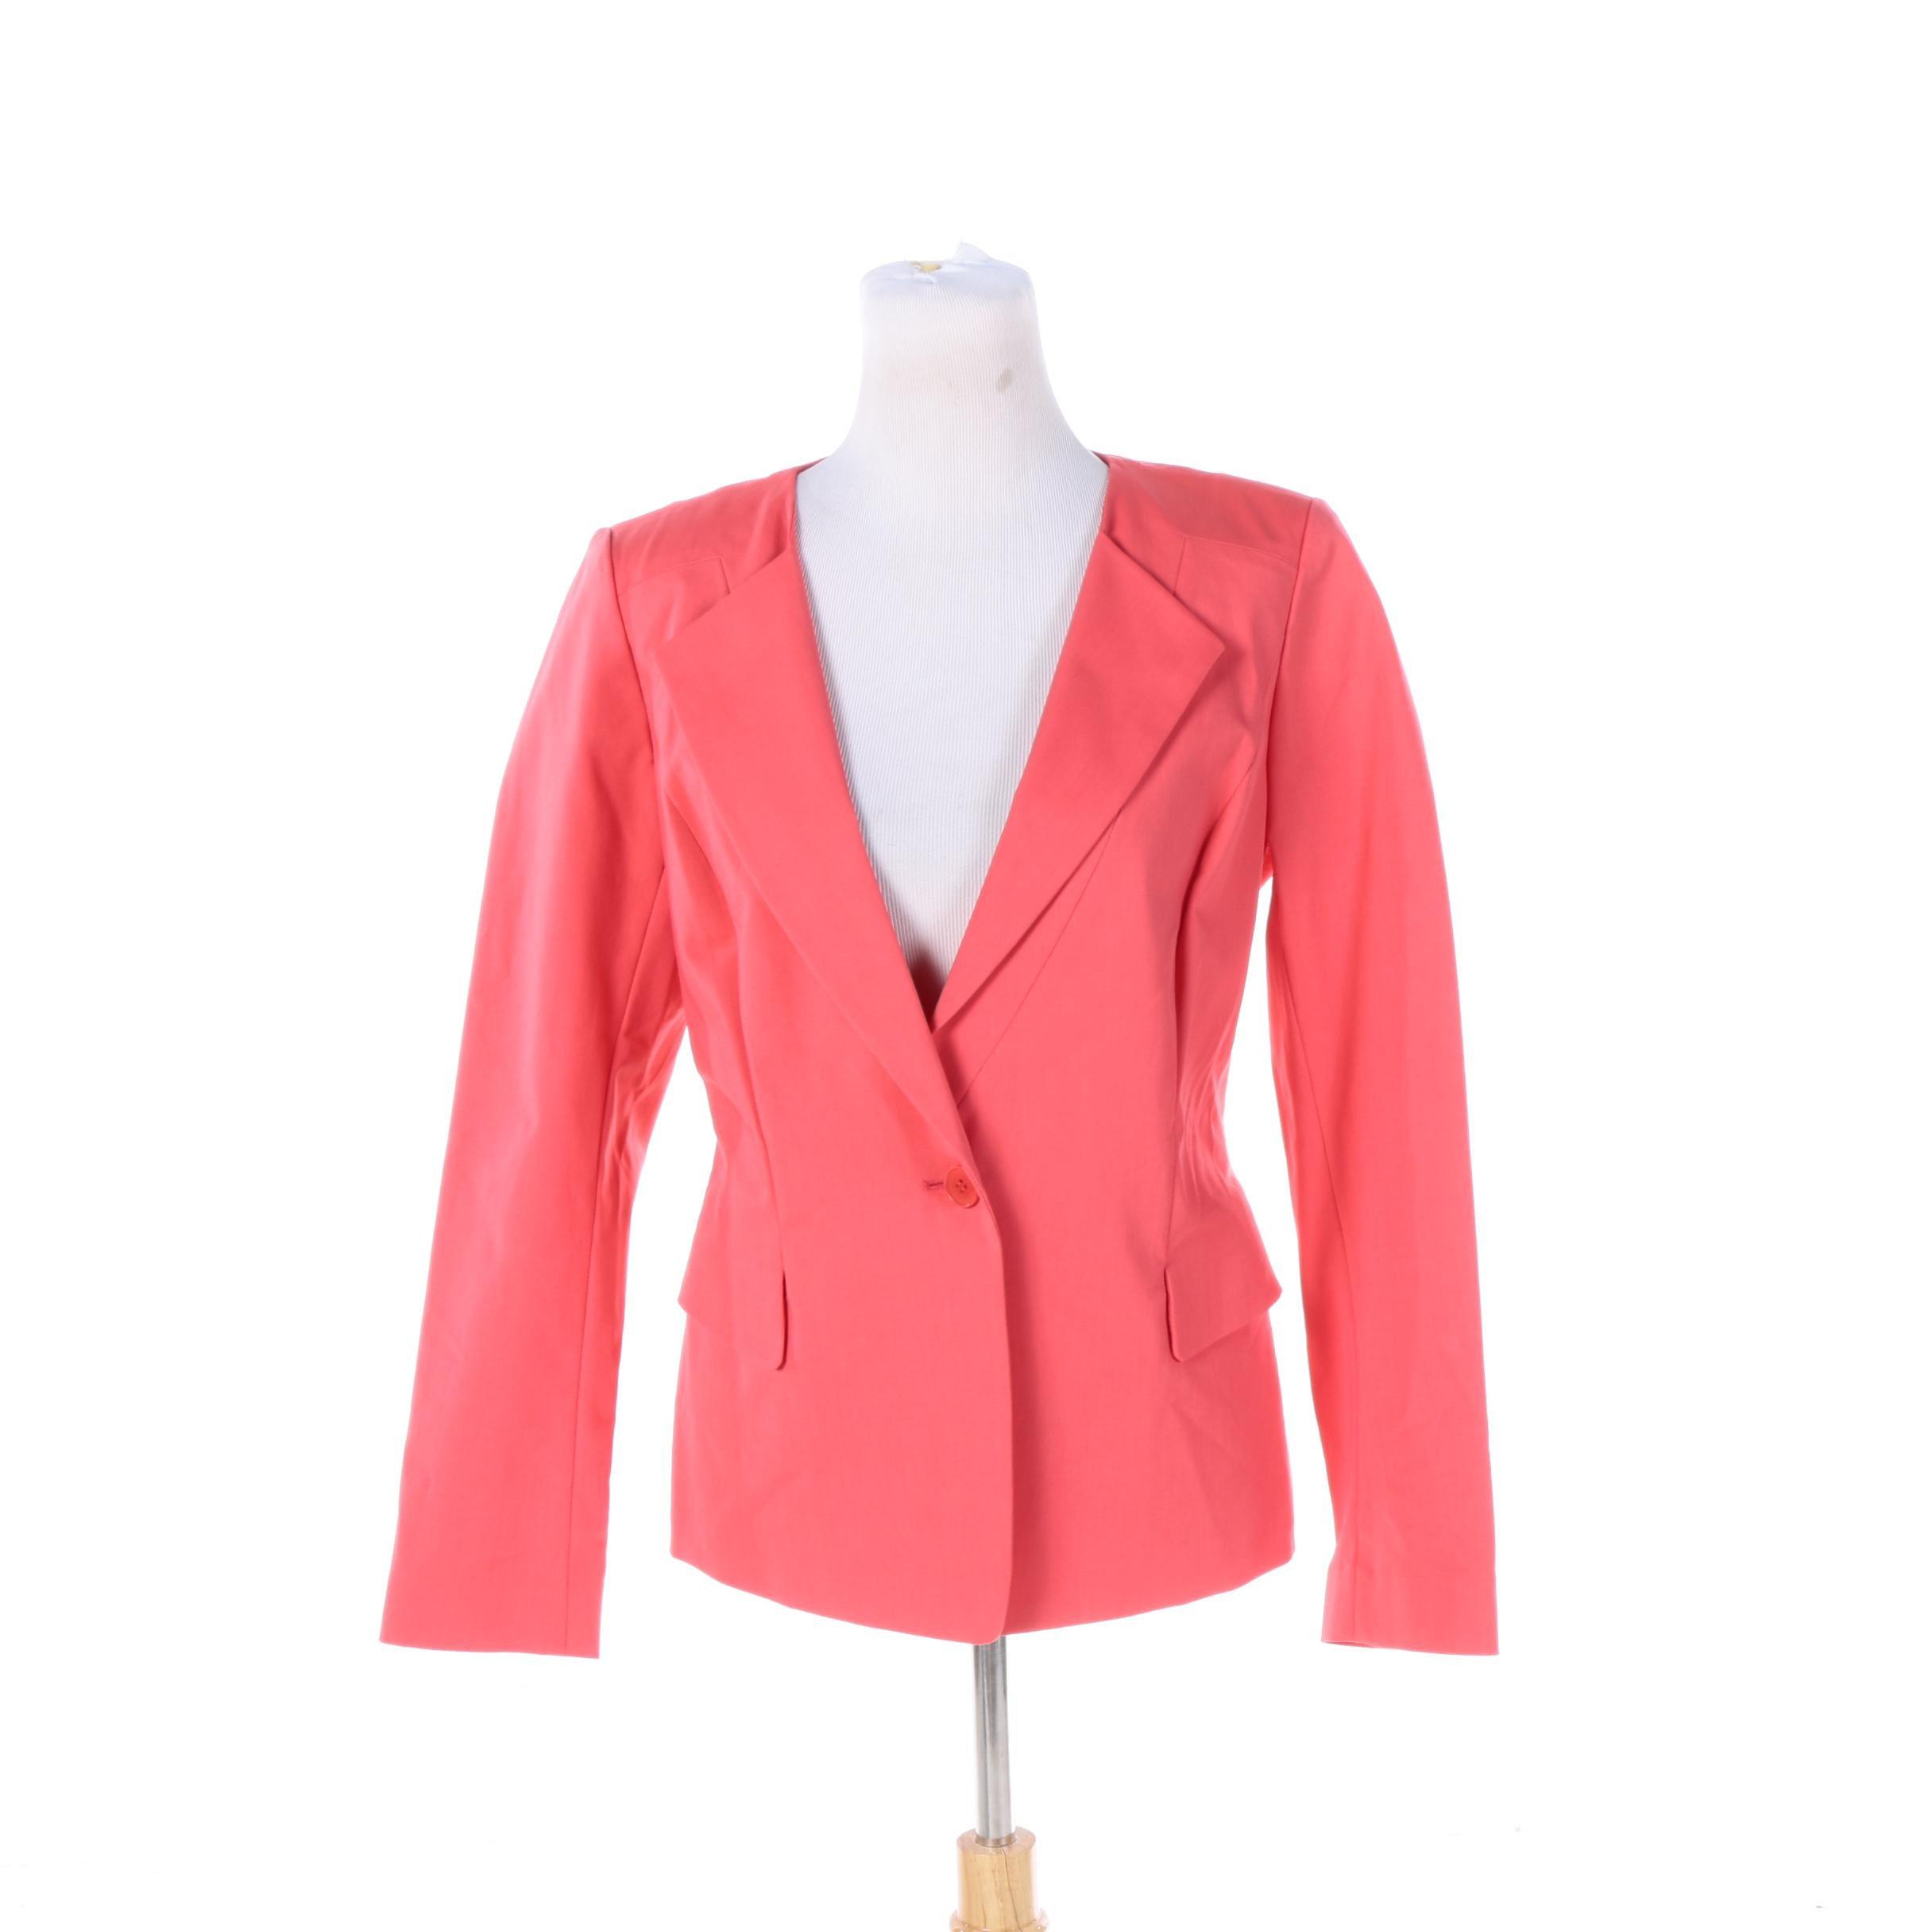 Women's Lafayette 148 New York Collarless Lapel Jacket